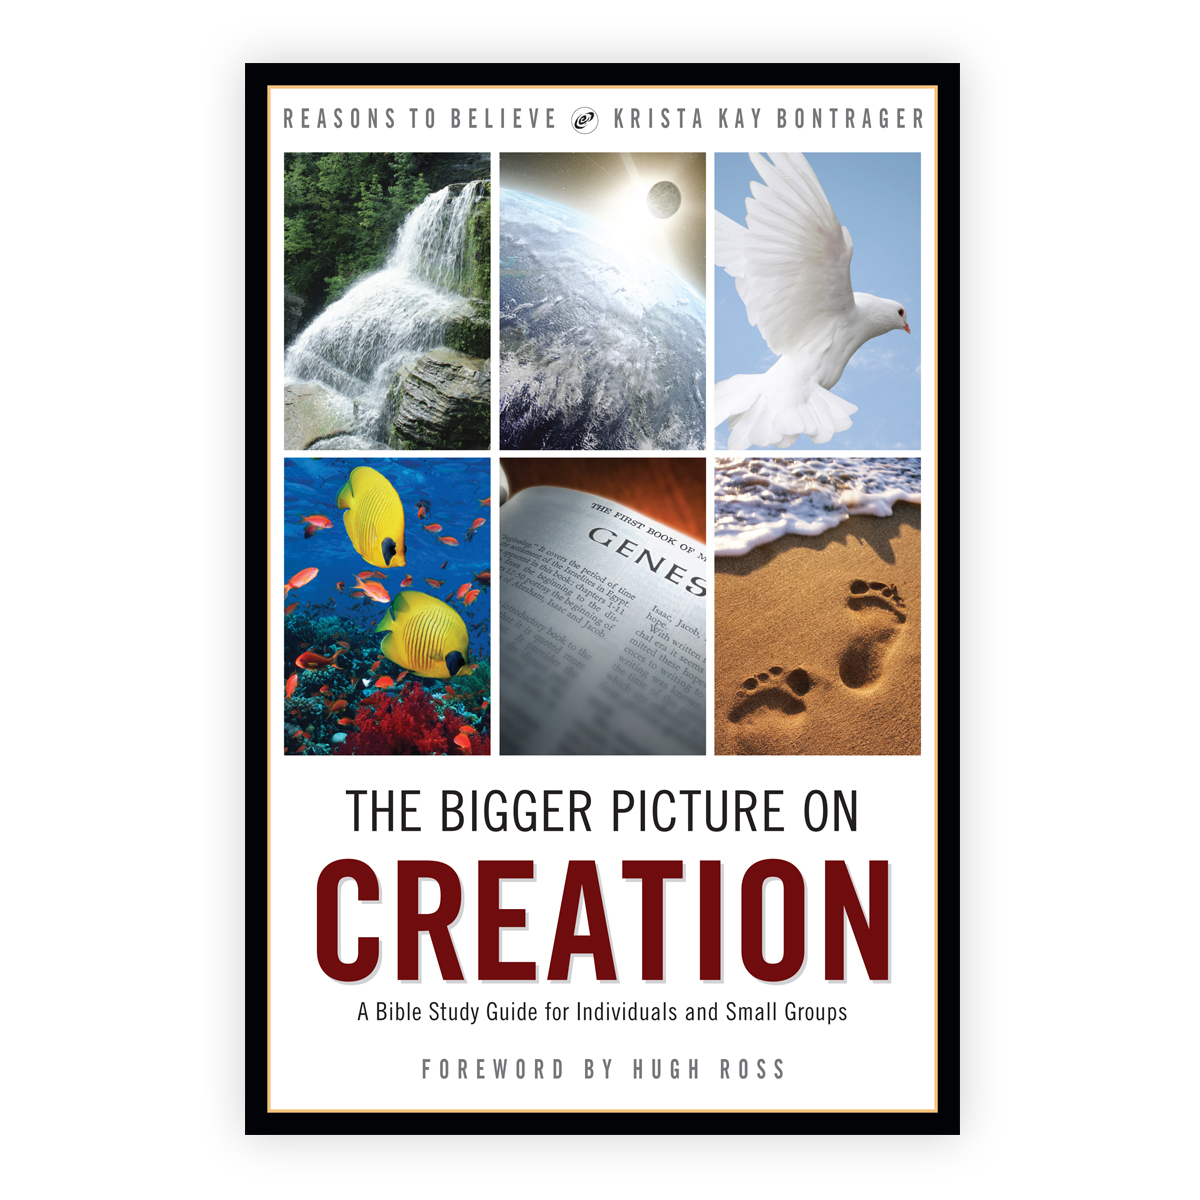 The Bigger Picture on Creation Study Guide Image